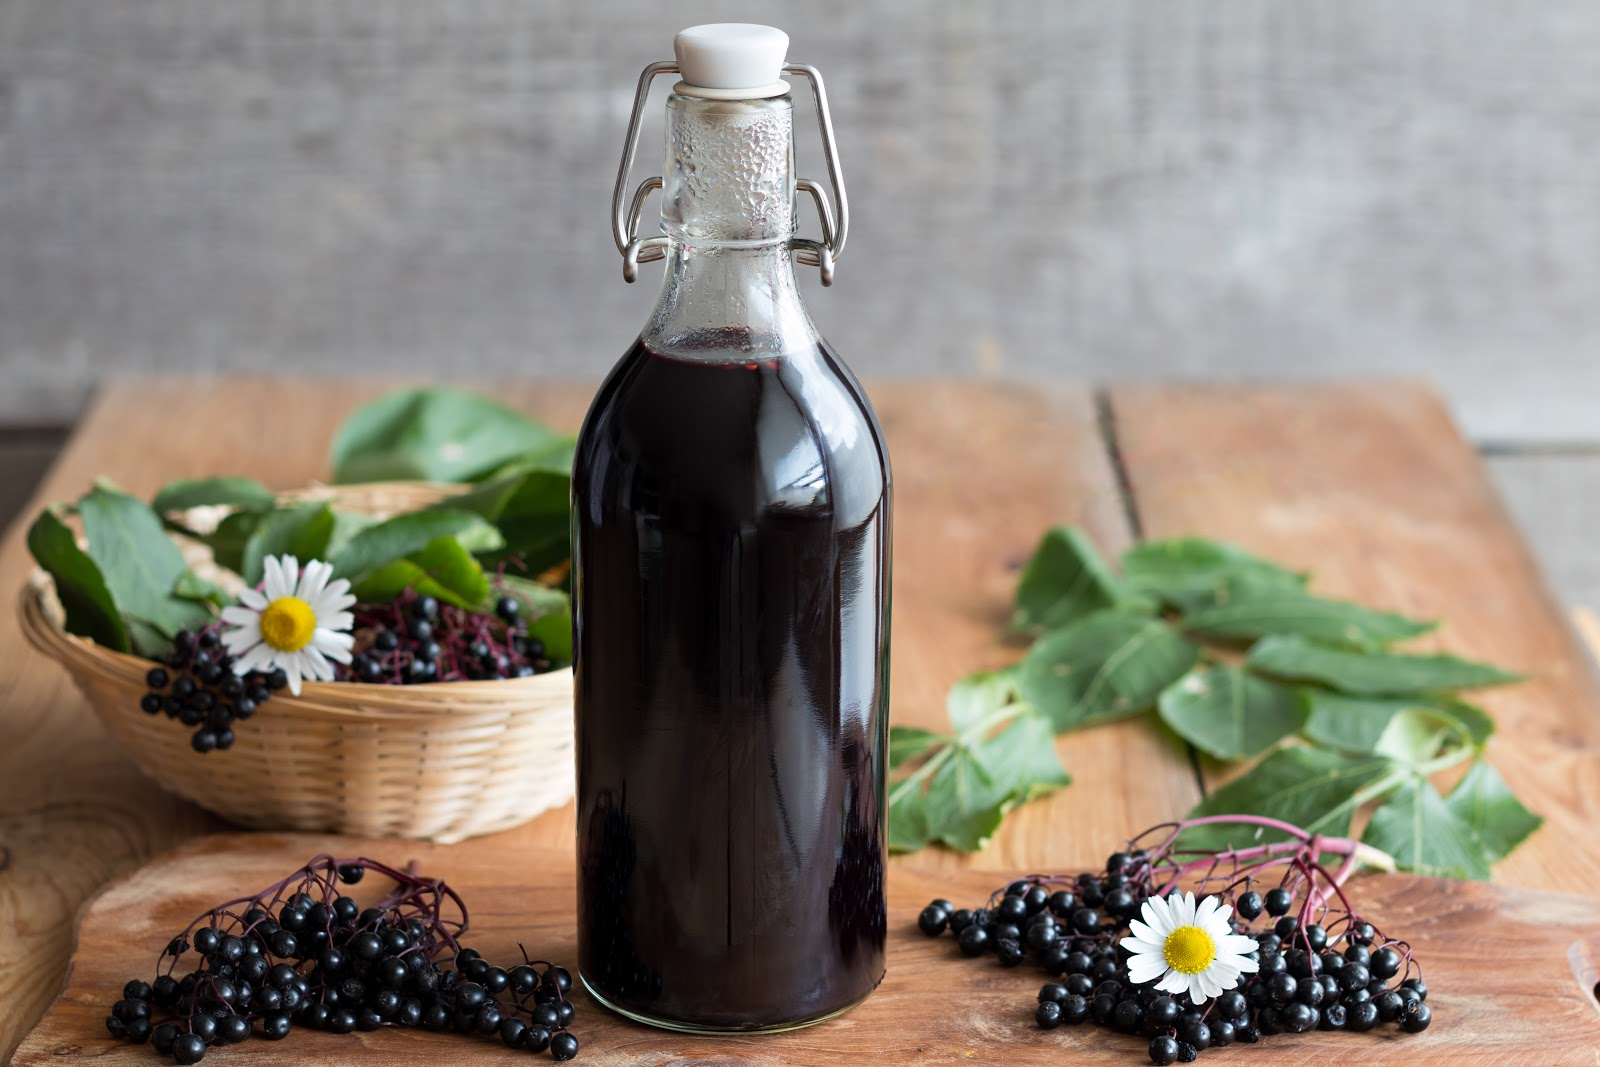 A bottle of elderberry juice next to piles of elderberries and antiviral herbs